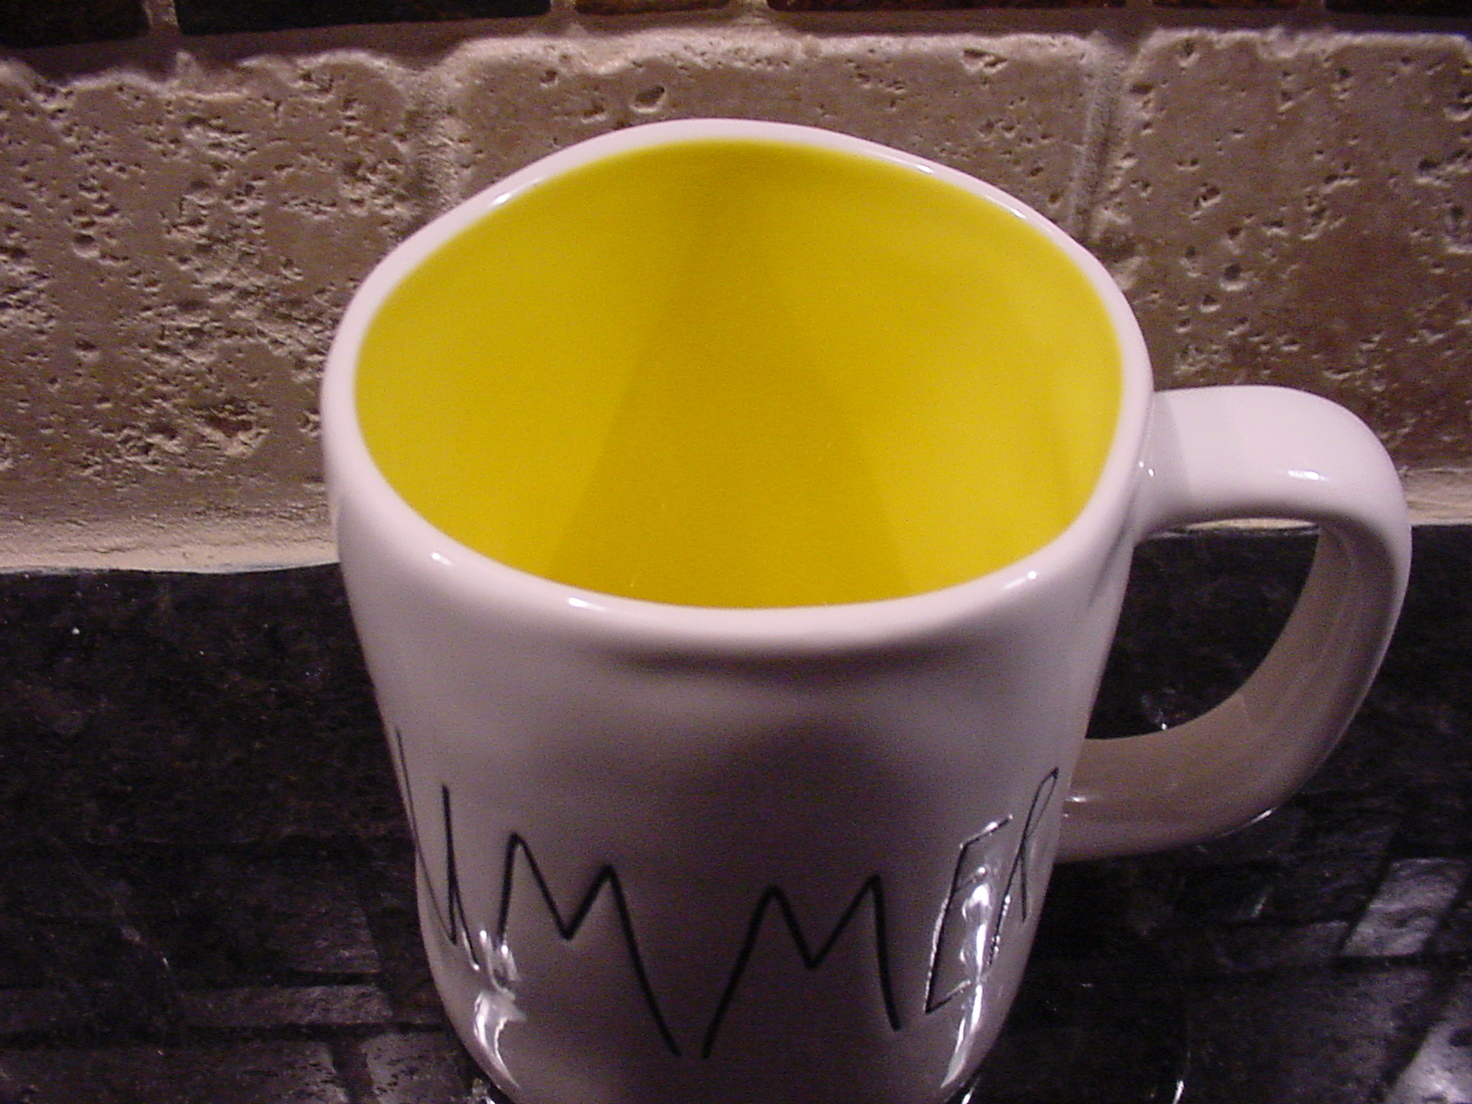 Rae Dunn by Magenta SUMMER Mug with Yellow Interior, New